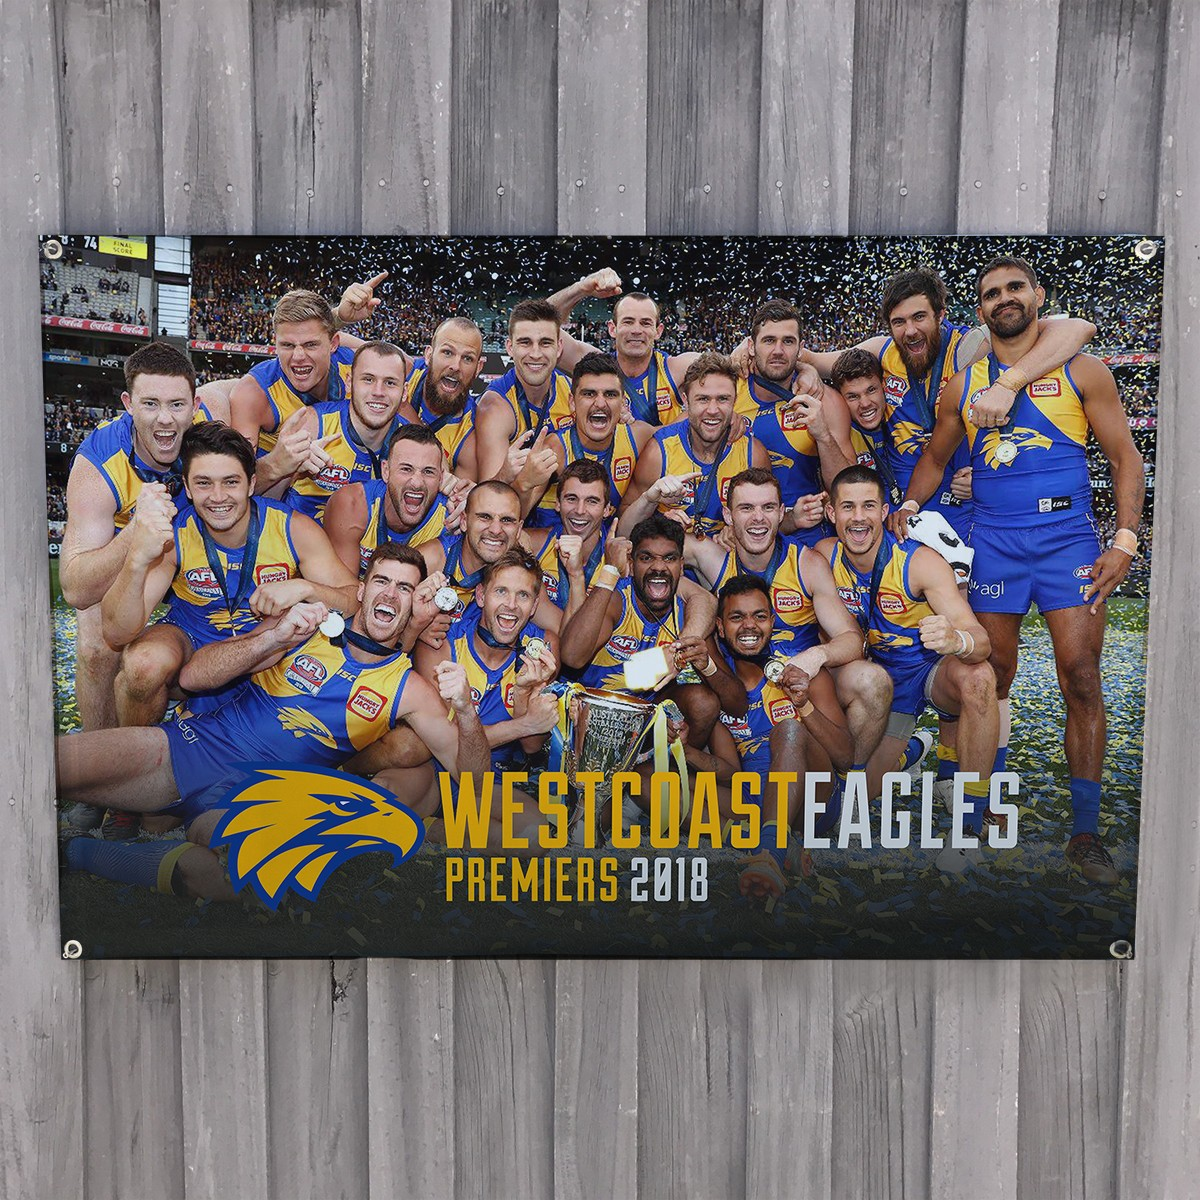 EAGLES TRIBUTE WALL HANGING 1200 X 800MM BY GEOFF SPENCER